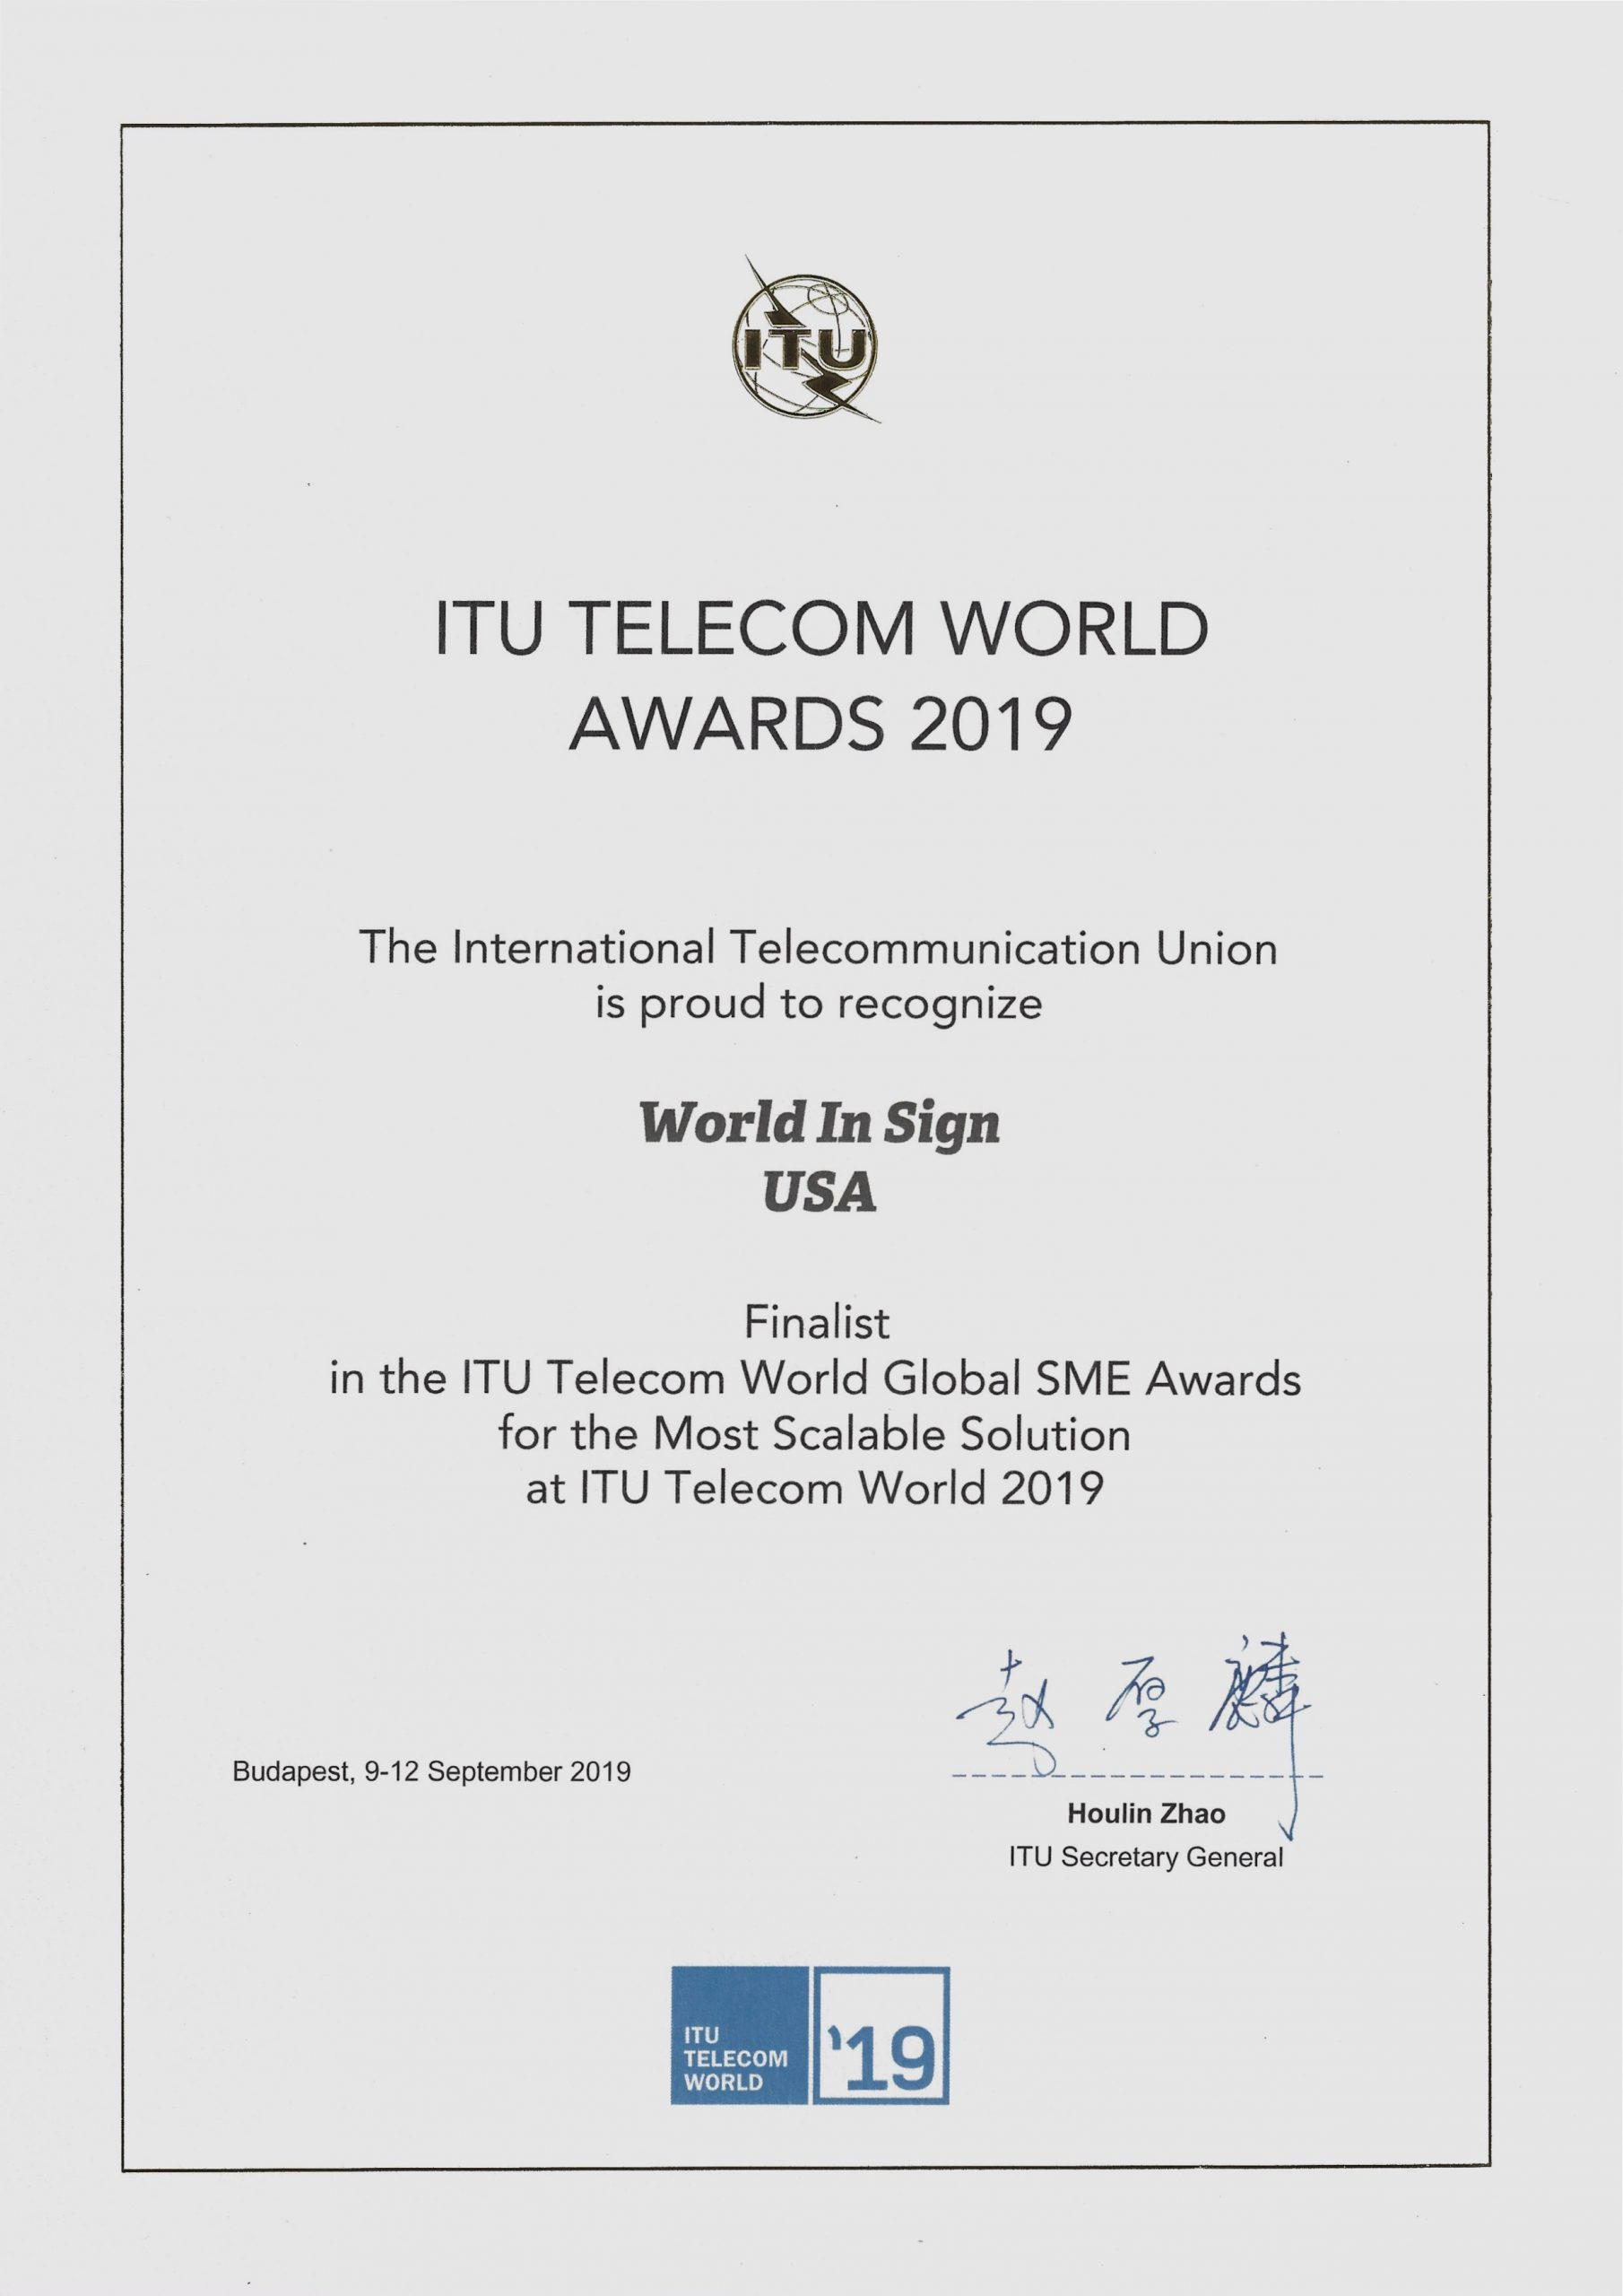 2019 ITU Telecom World Awards